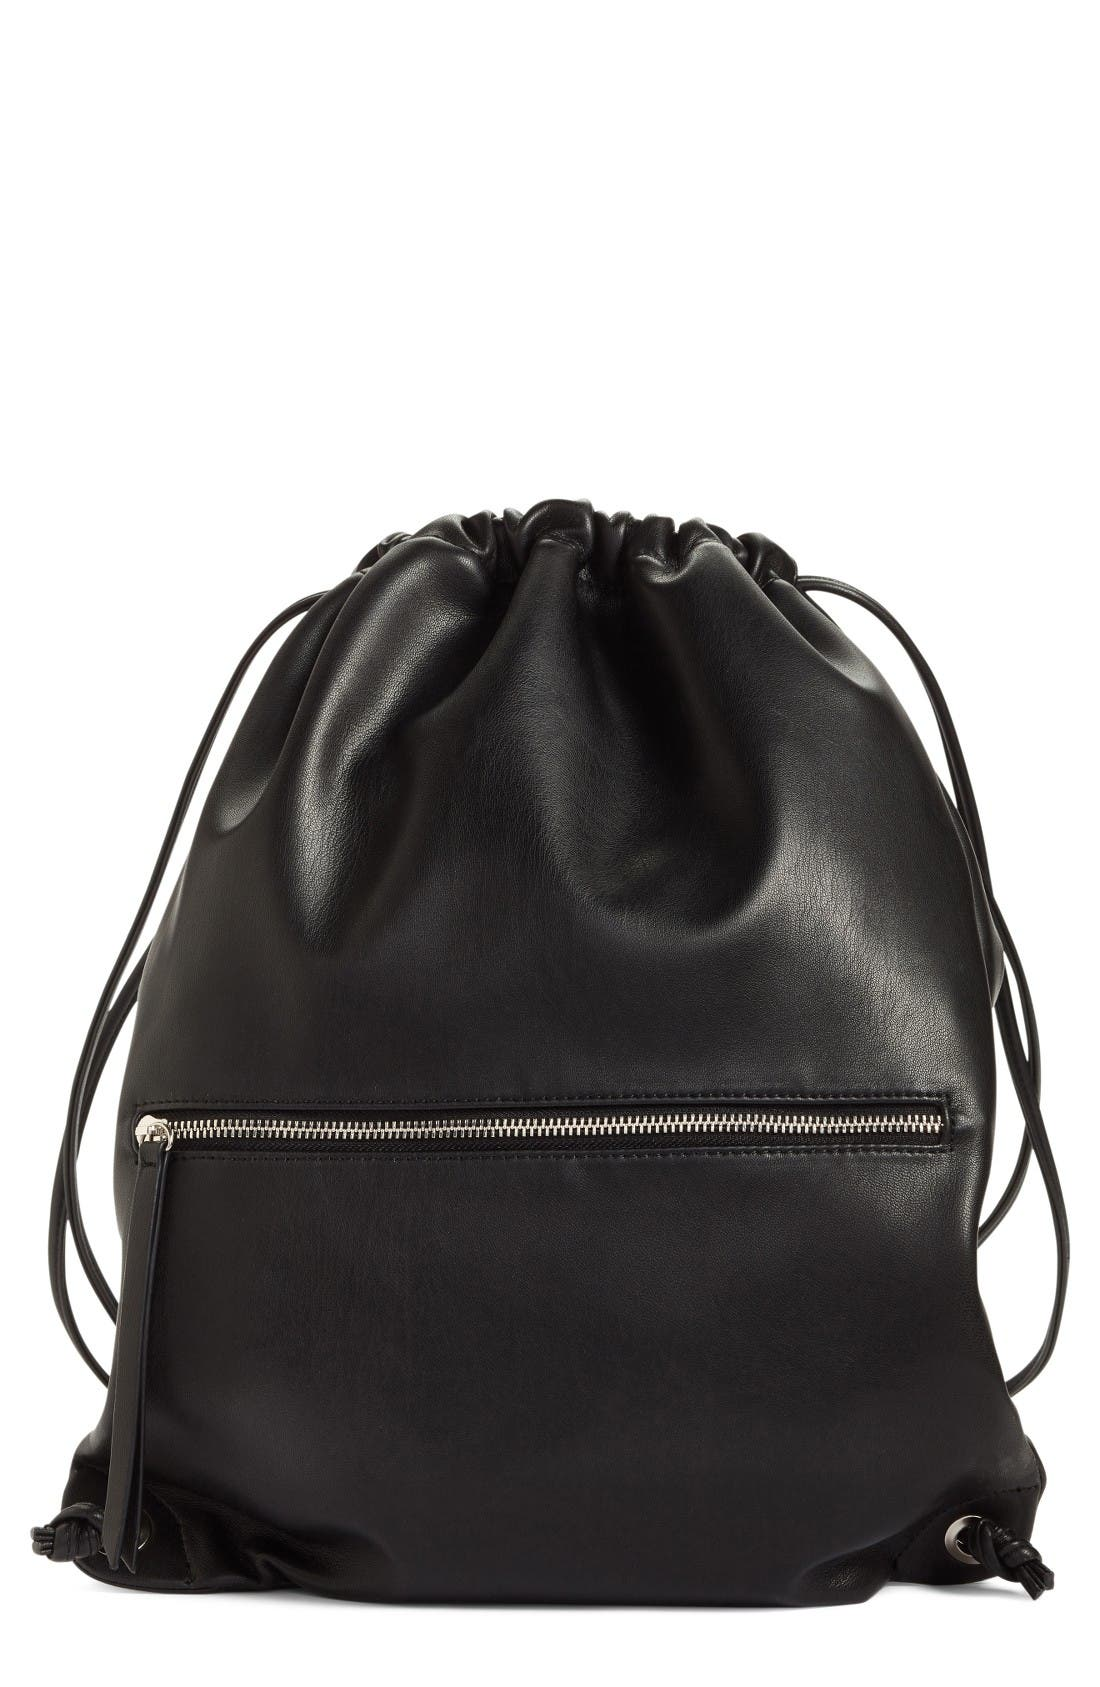 Alternate Image 1 Selected - Phase 3 Faux Leather Sling Backpack